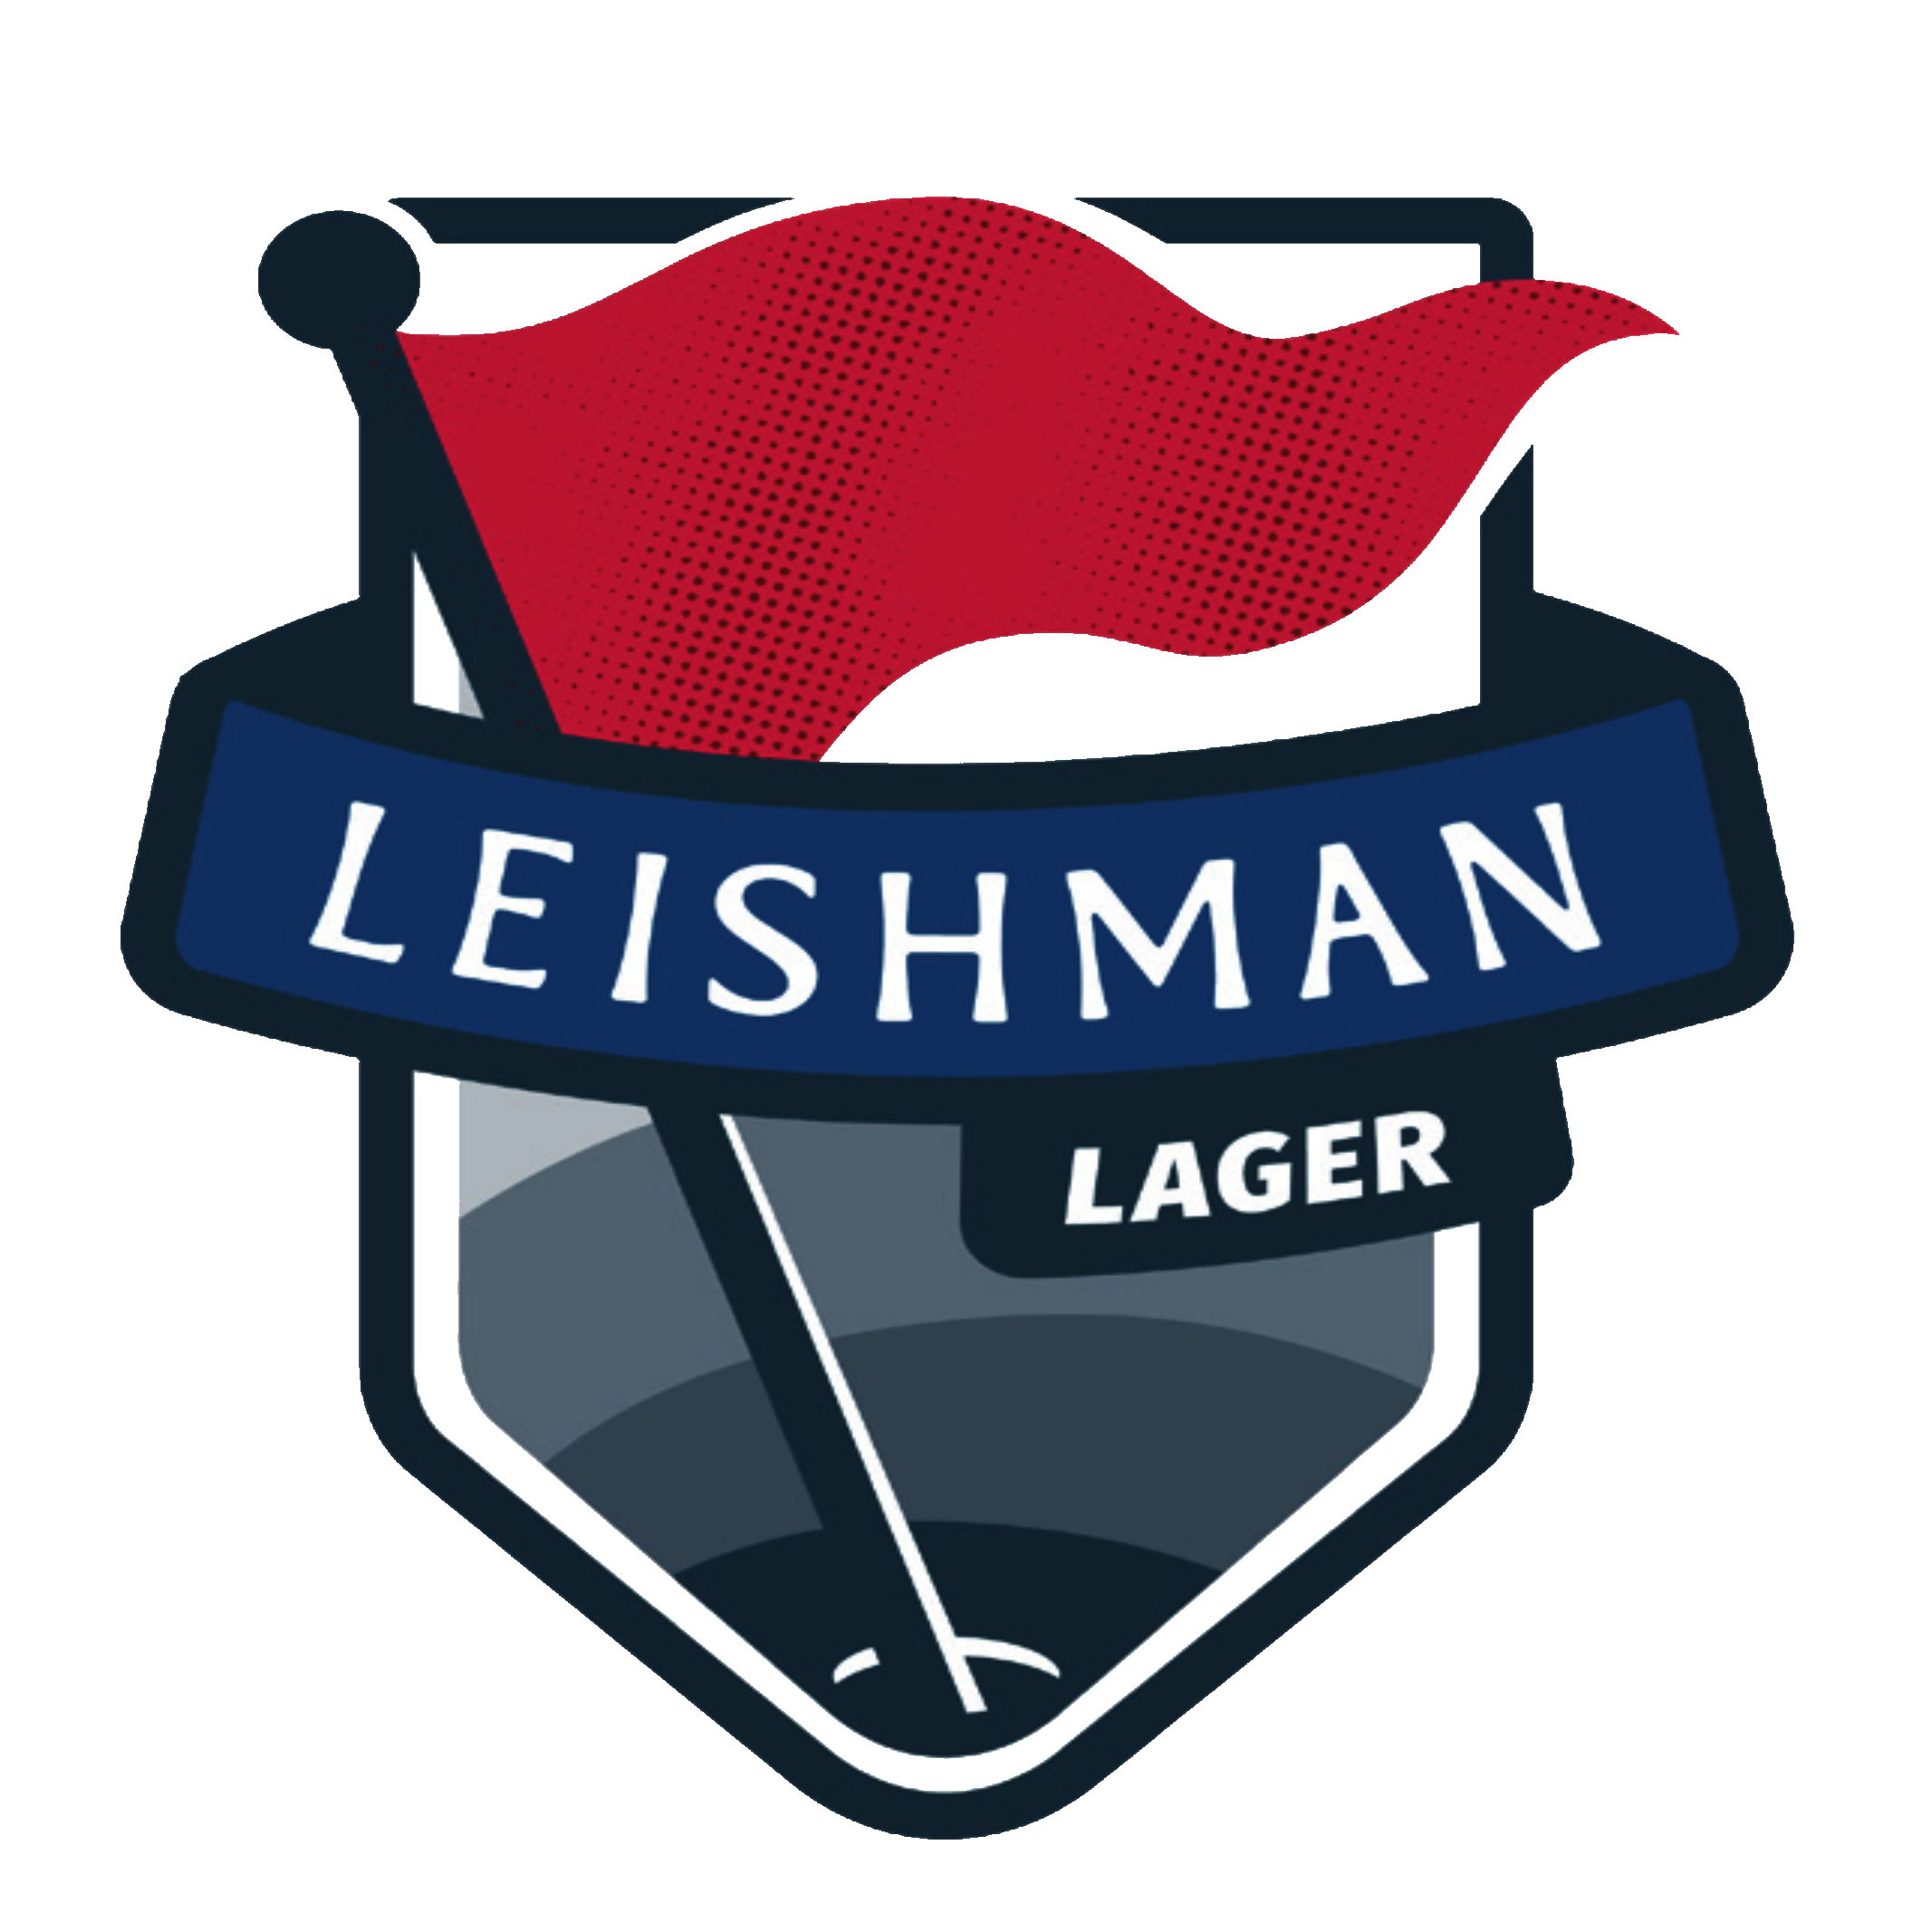 Leishman Lager | by Marc Leishman. A true Australian Lager created for on and off the golf course